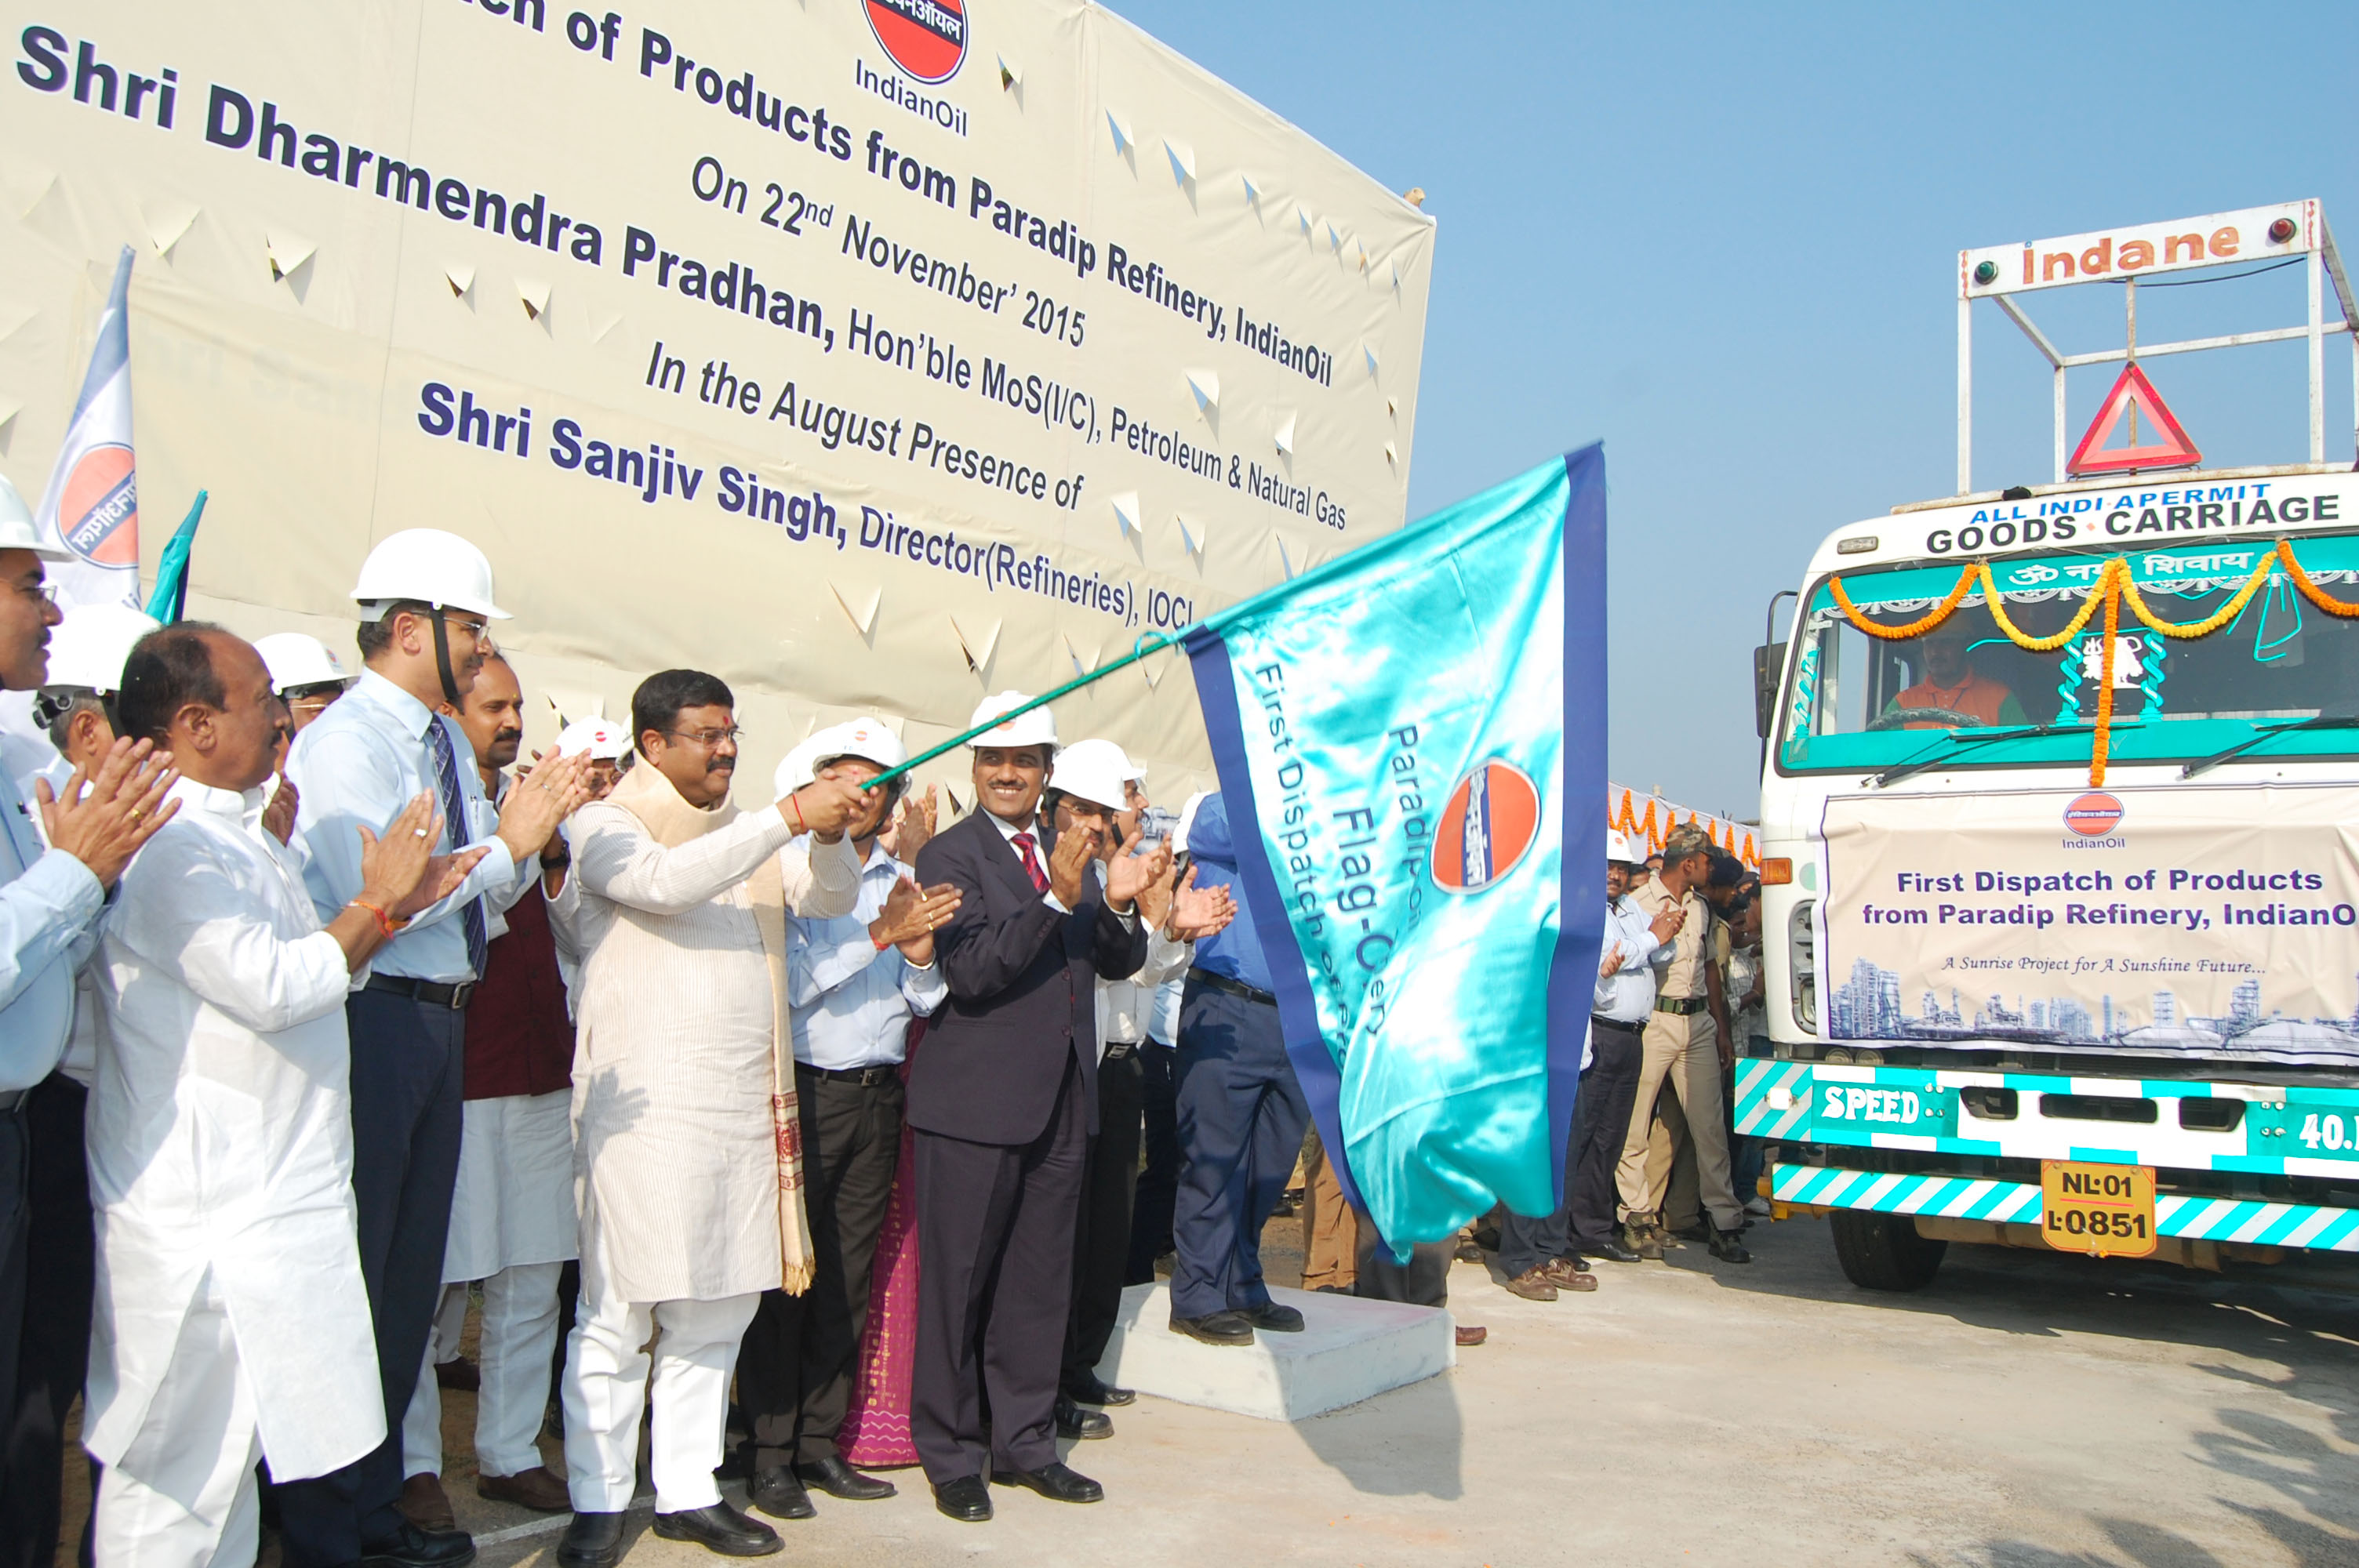 Hon'ble MoS(IC), P&NG Flanging-off the first dispatch of consignment of products from Paradip Refinery (2)